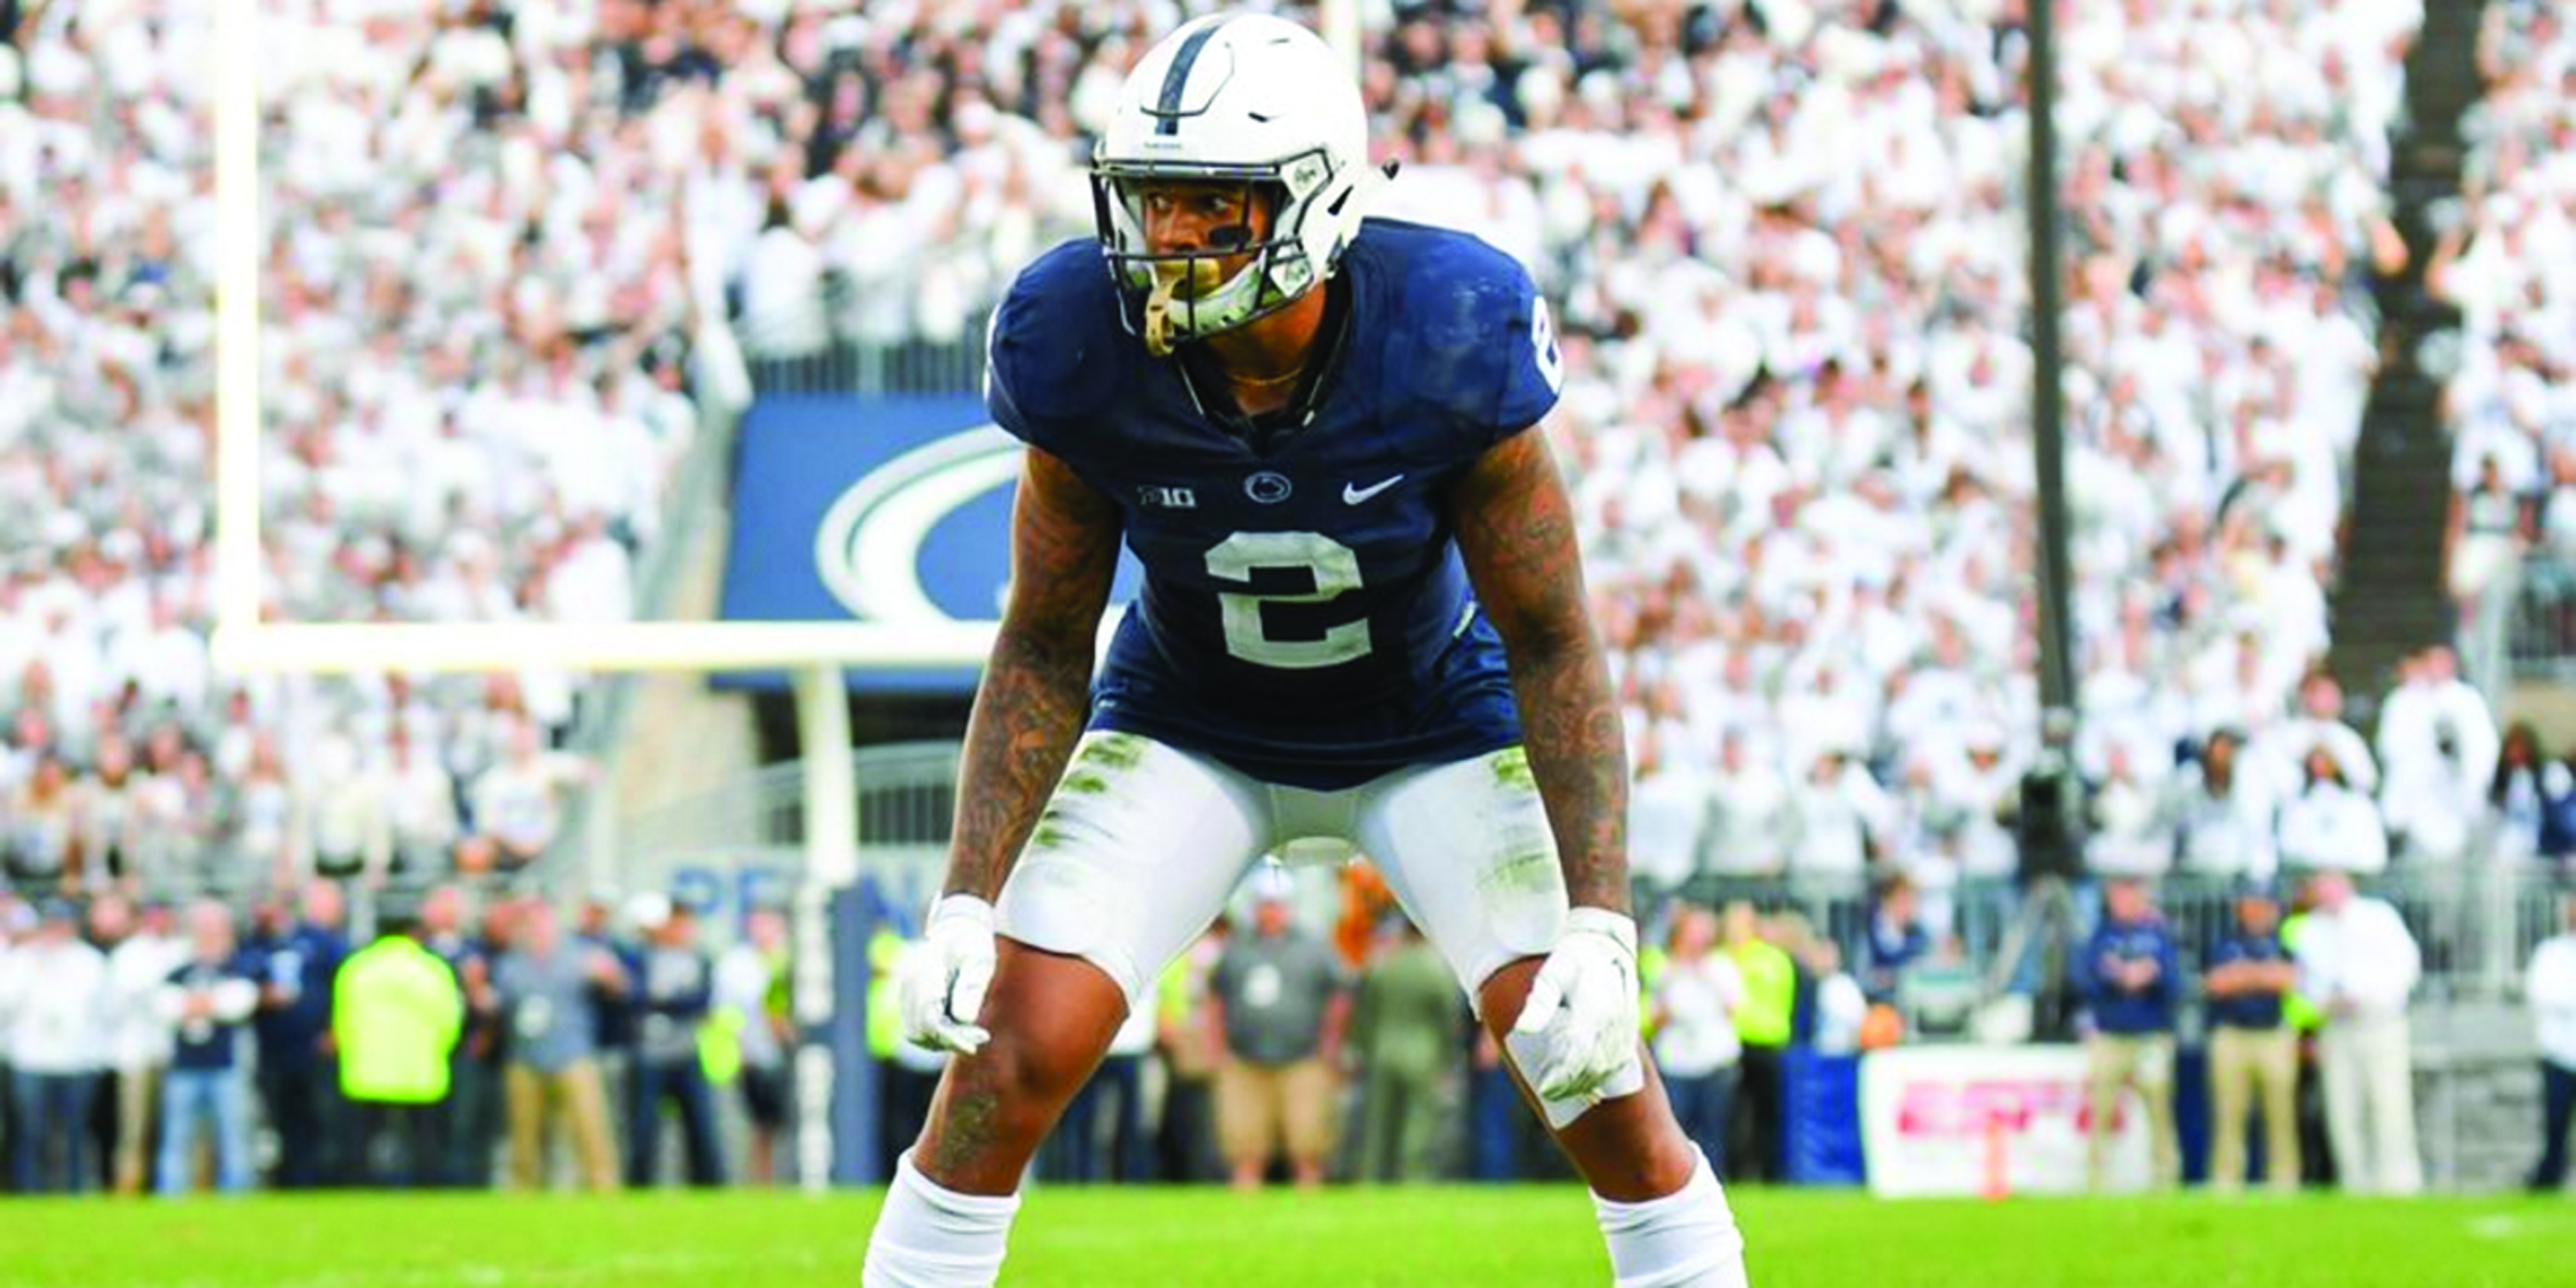 c89570505 Four Penn State Nittany Lions selected on Day 3 of 2018 NFL Draft ...